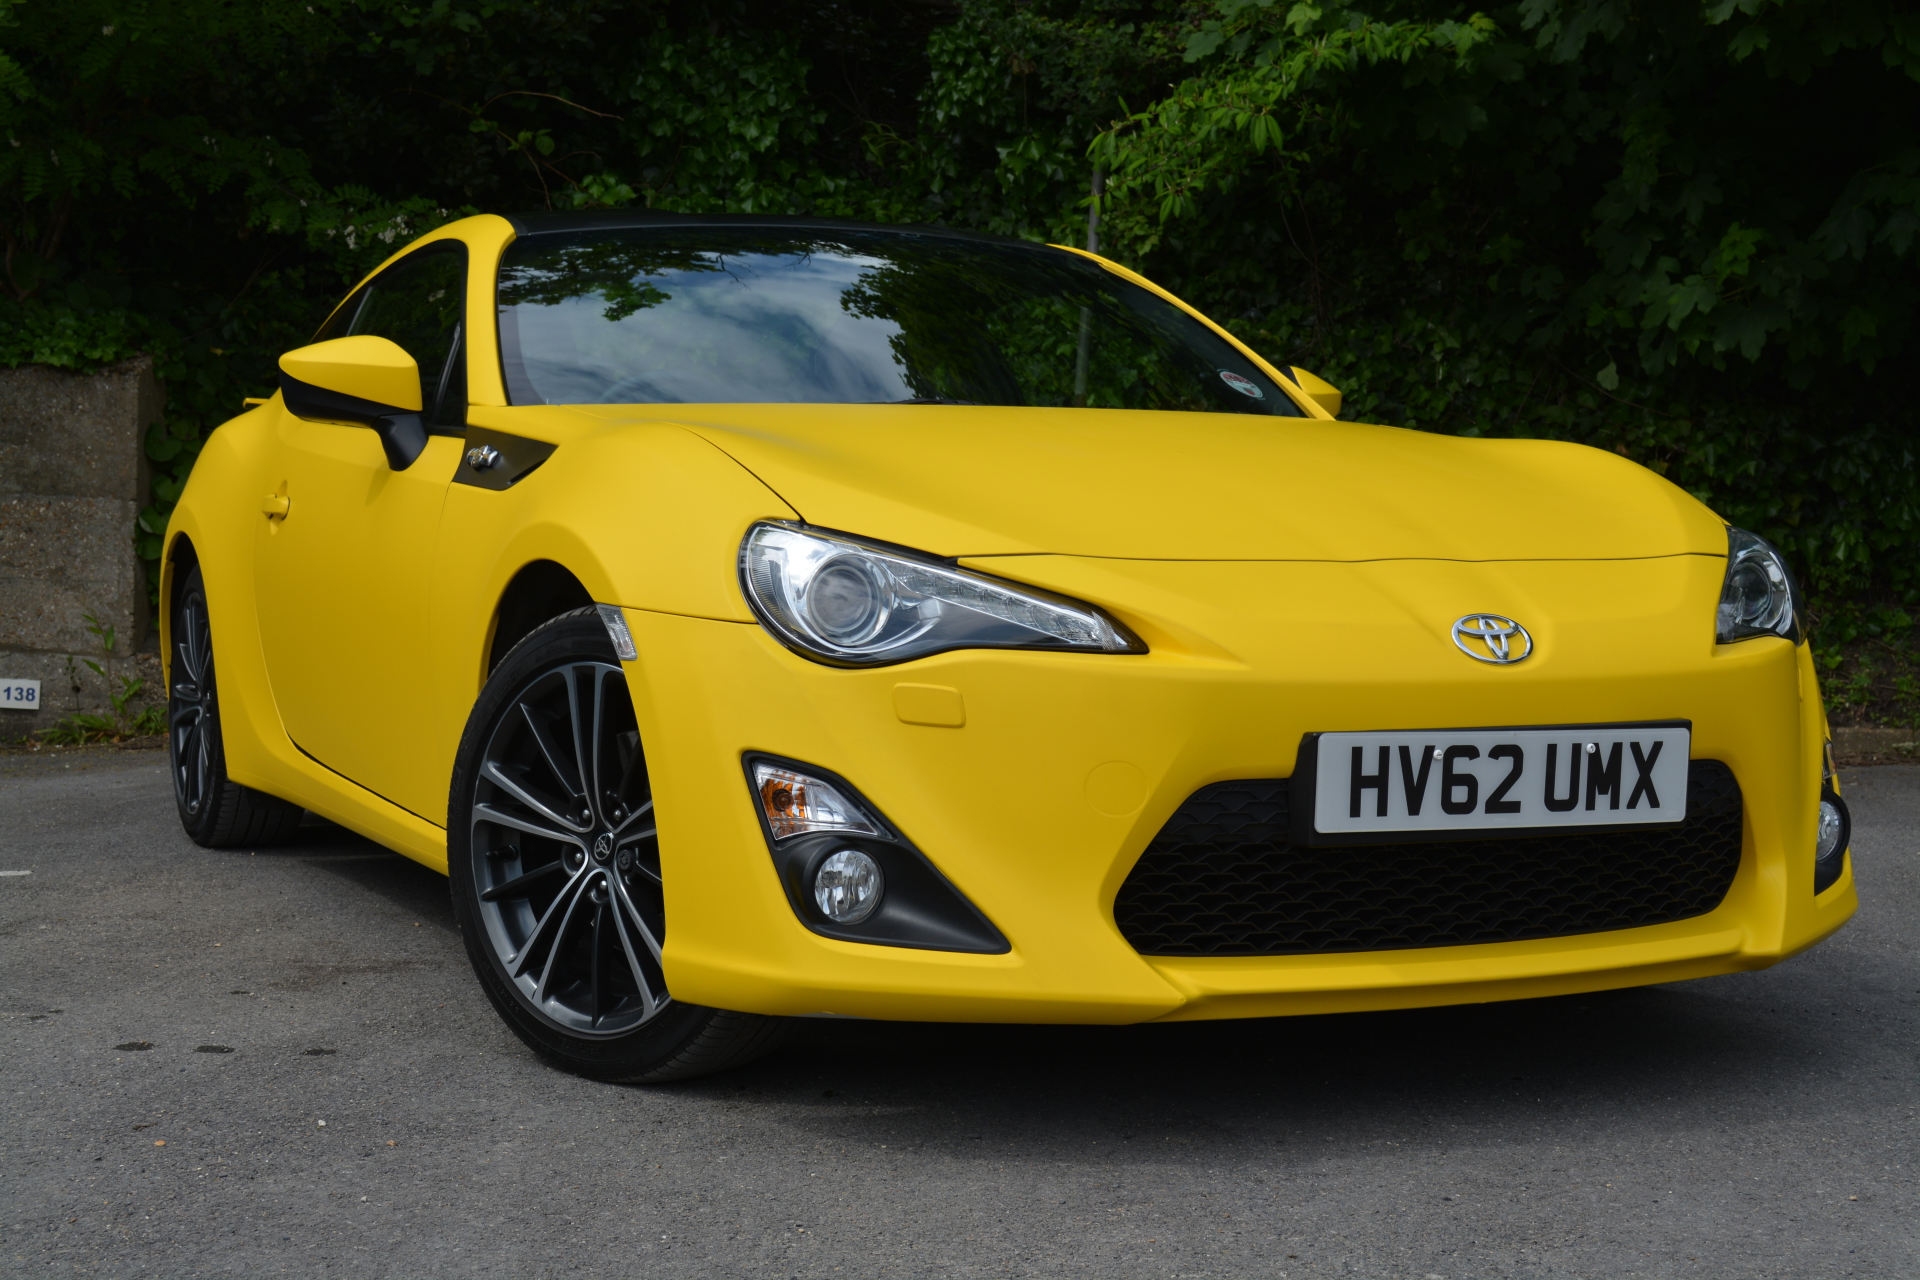 3M Matte yellow car wrap colour